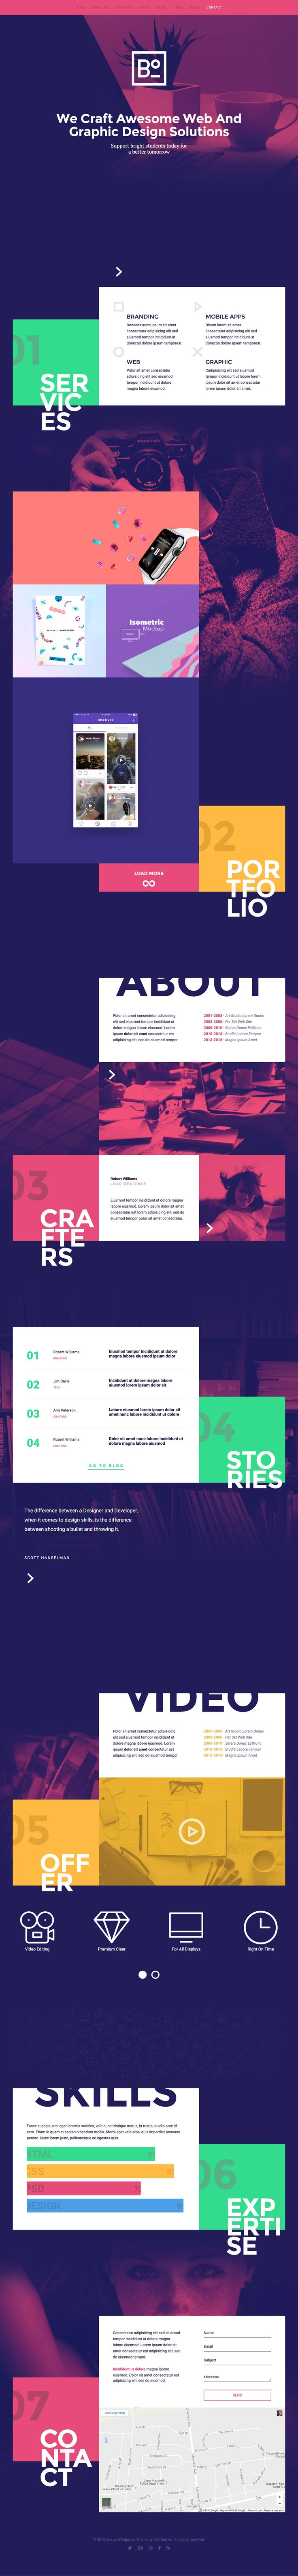 'Boxus' is unique, colorful One Page HTML template suited for a slick personal or digital agency portfolio. The design really is refreshing for a template with fancy scrolling sections and big typography. Features include image gallery, animated skills graph, preloader, contact form and Google Maps.